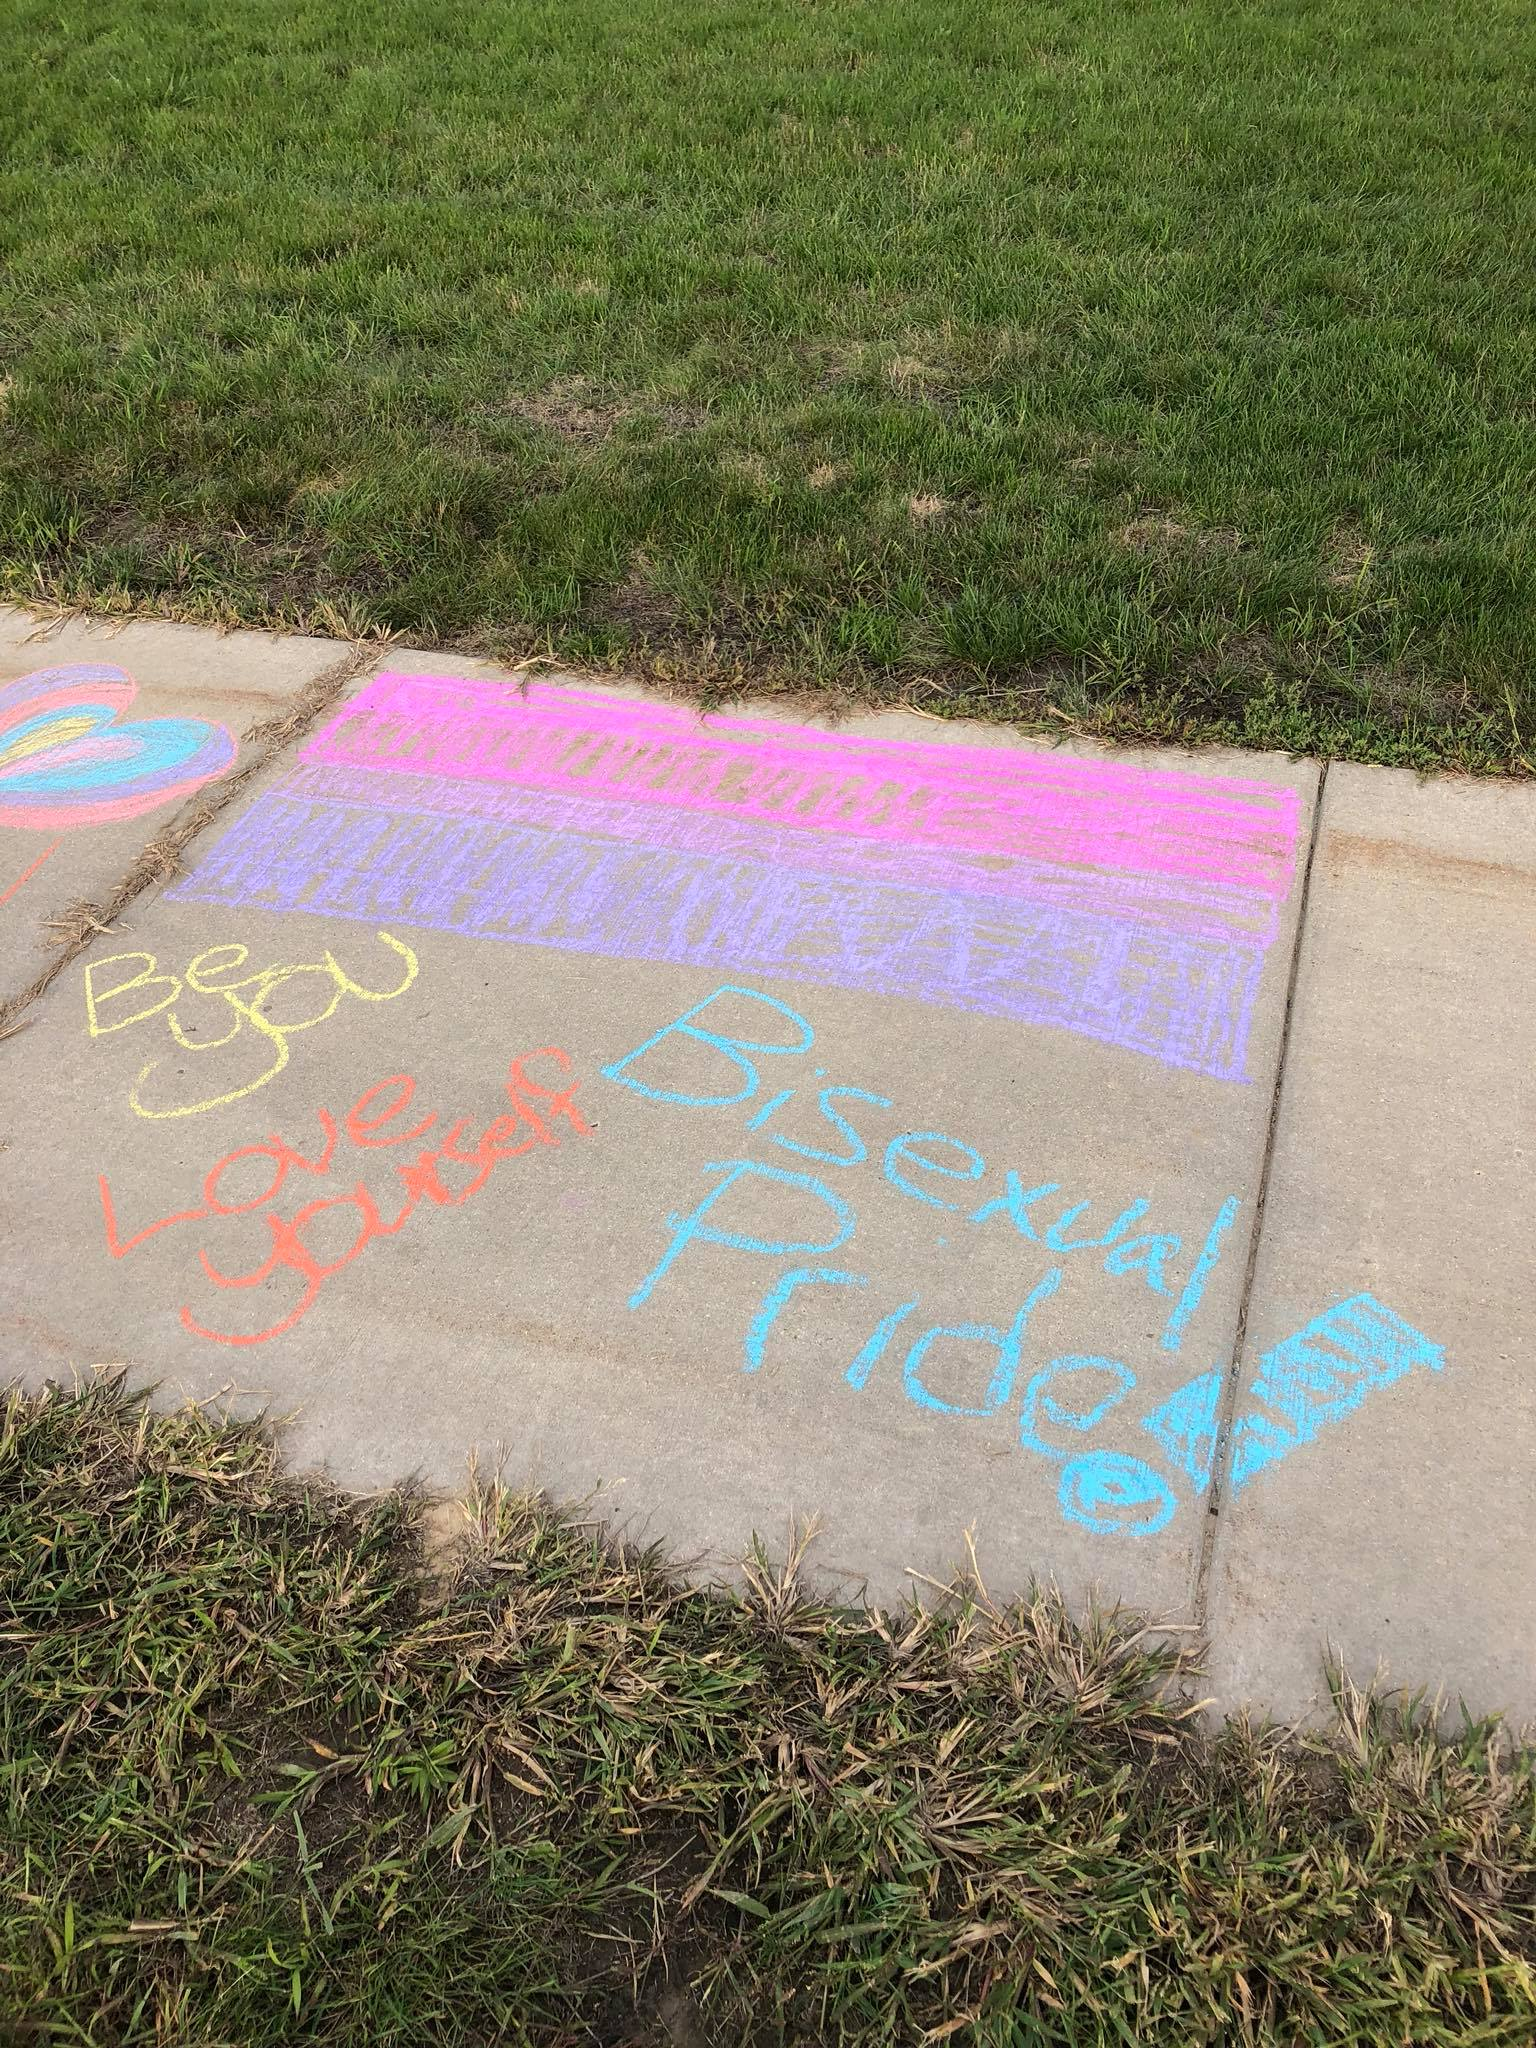 The pink, purple, and blue flag is drawn in chalk above the phrases: 'Be you', 'Love yourself', and 'Bisexual Pride!' on the Mount Pleasant campus sidewalk